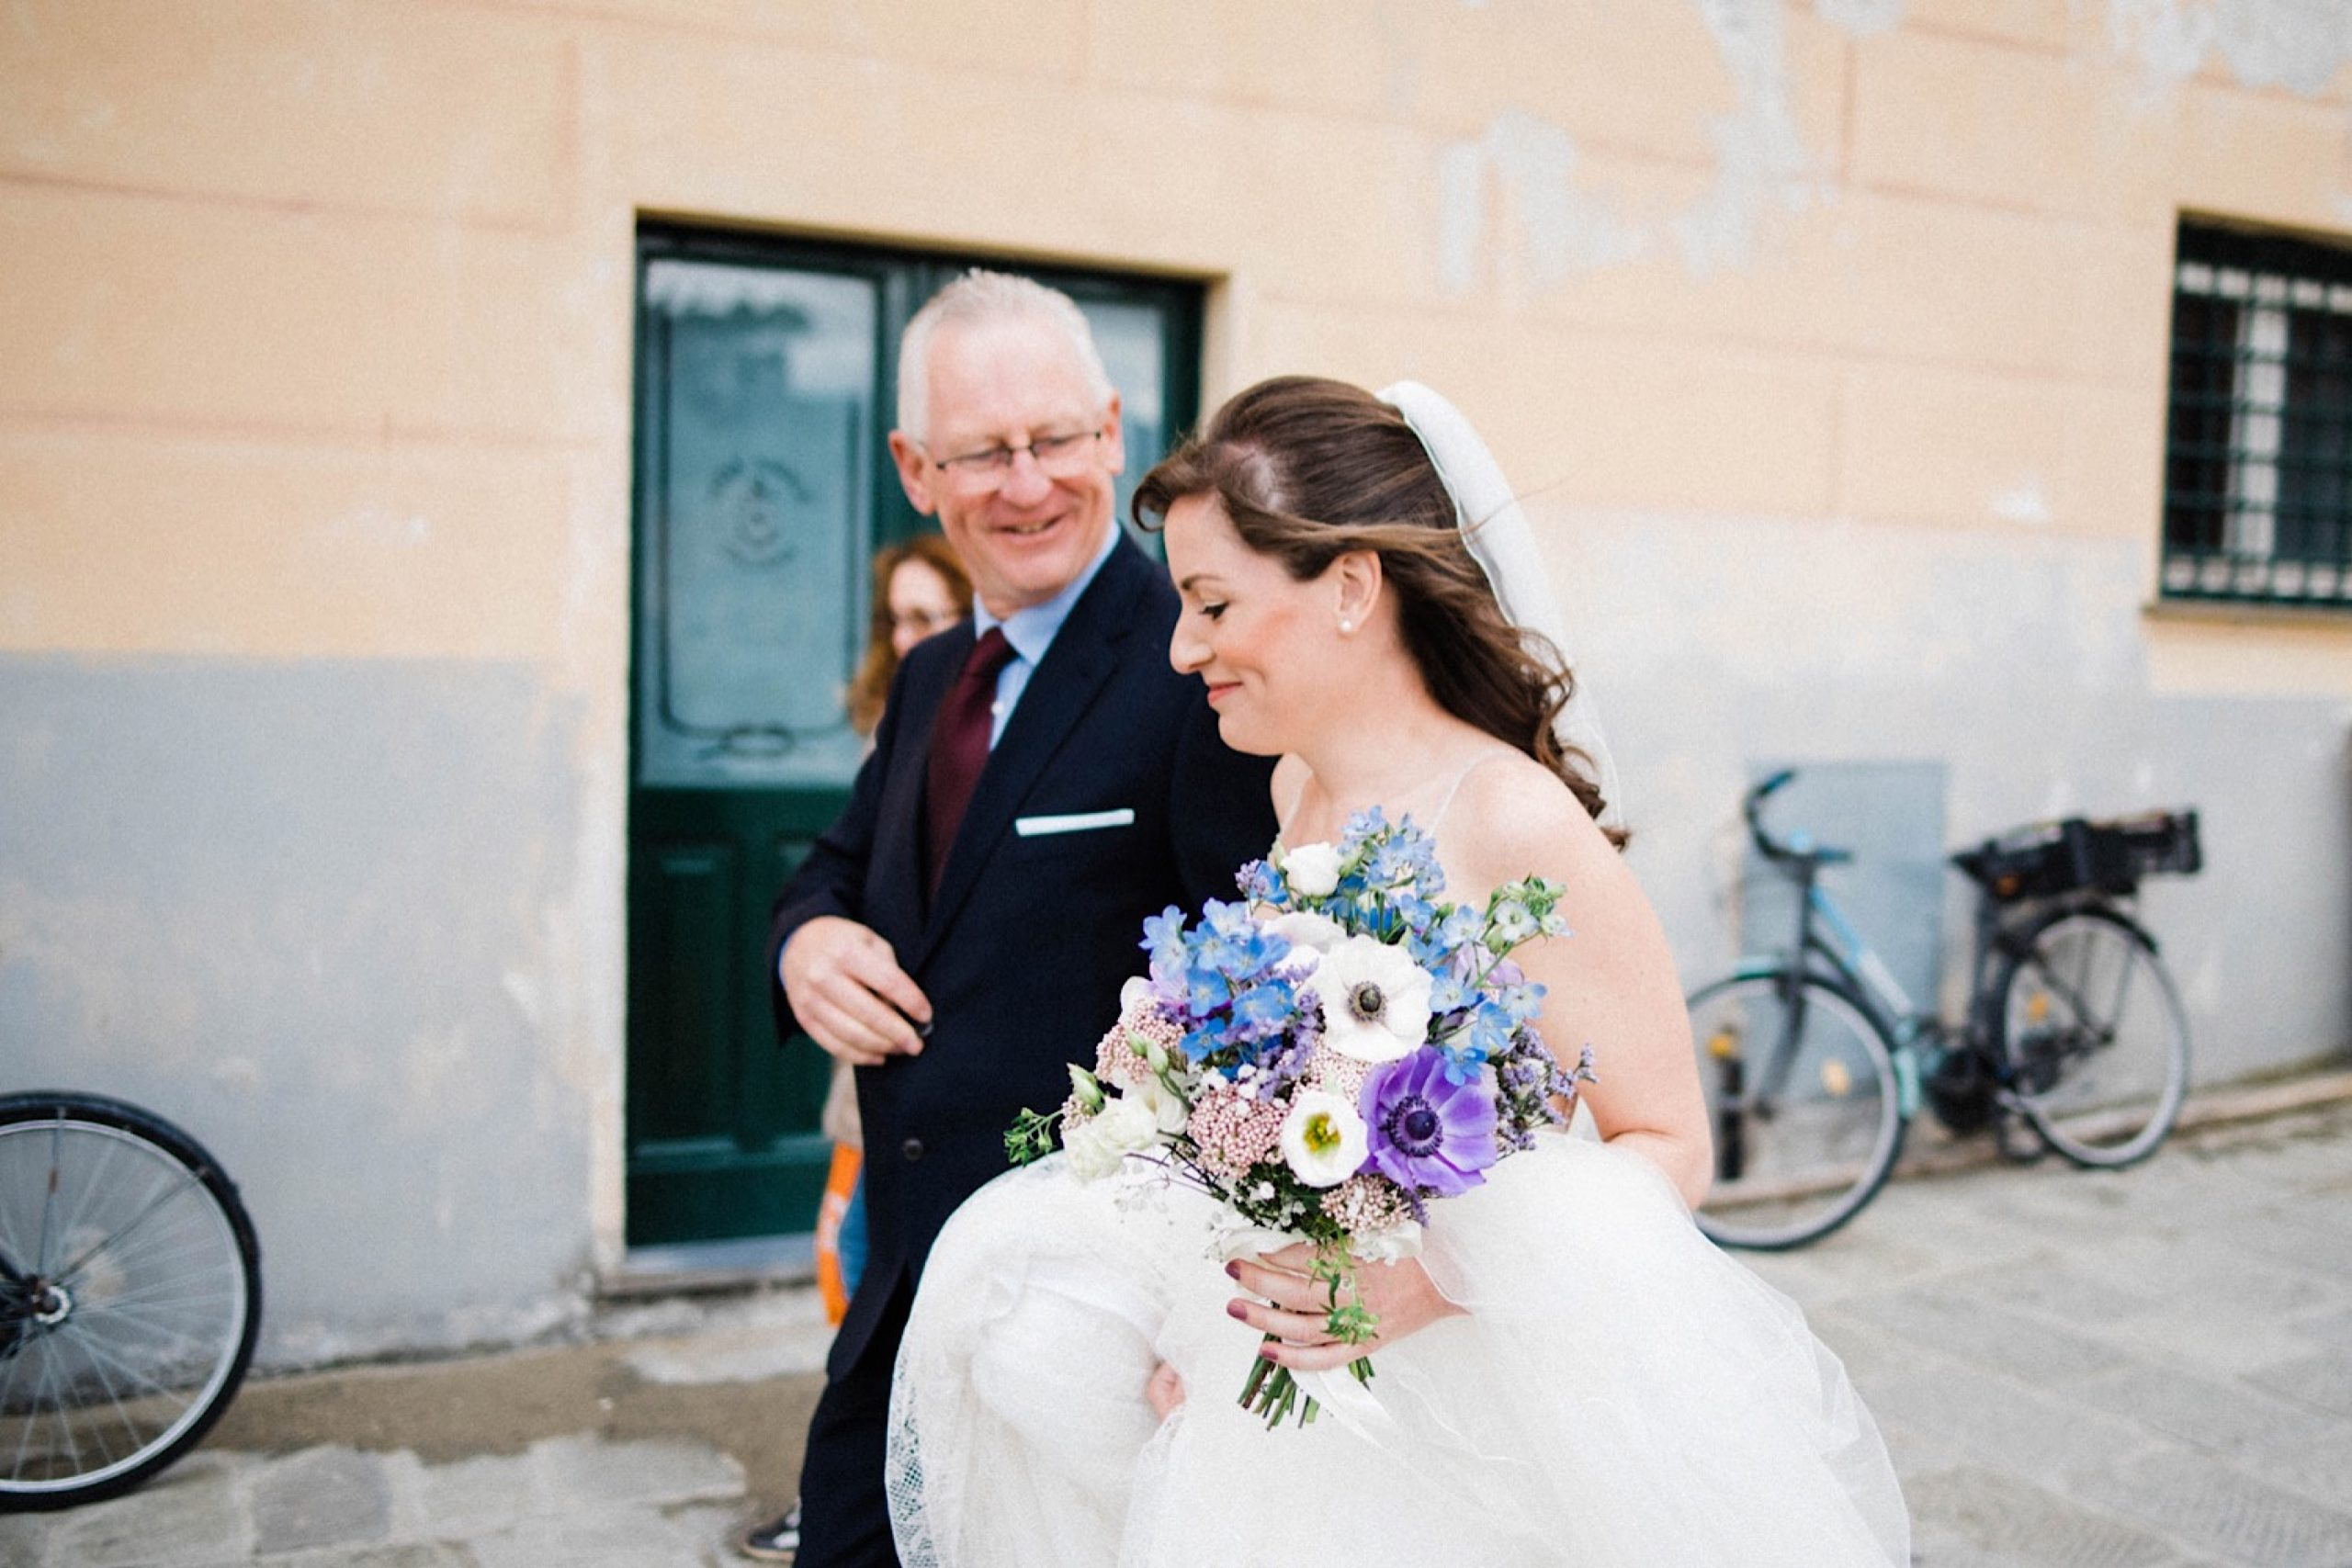 Candid Destination Wedding Photography of the bride & her Dad walking towards her Italian Riviera Wedding Ceremony.